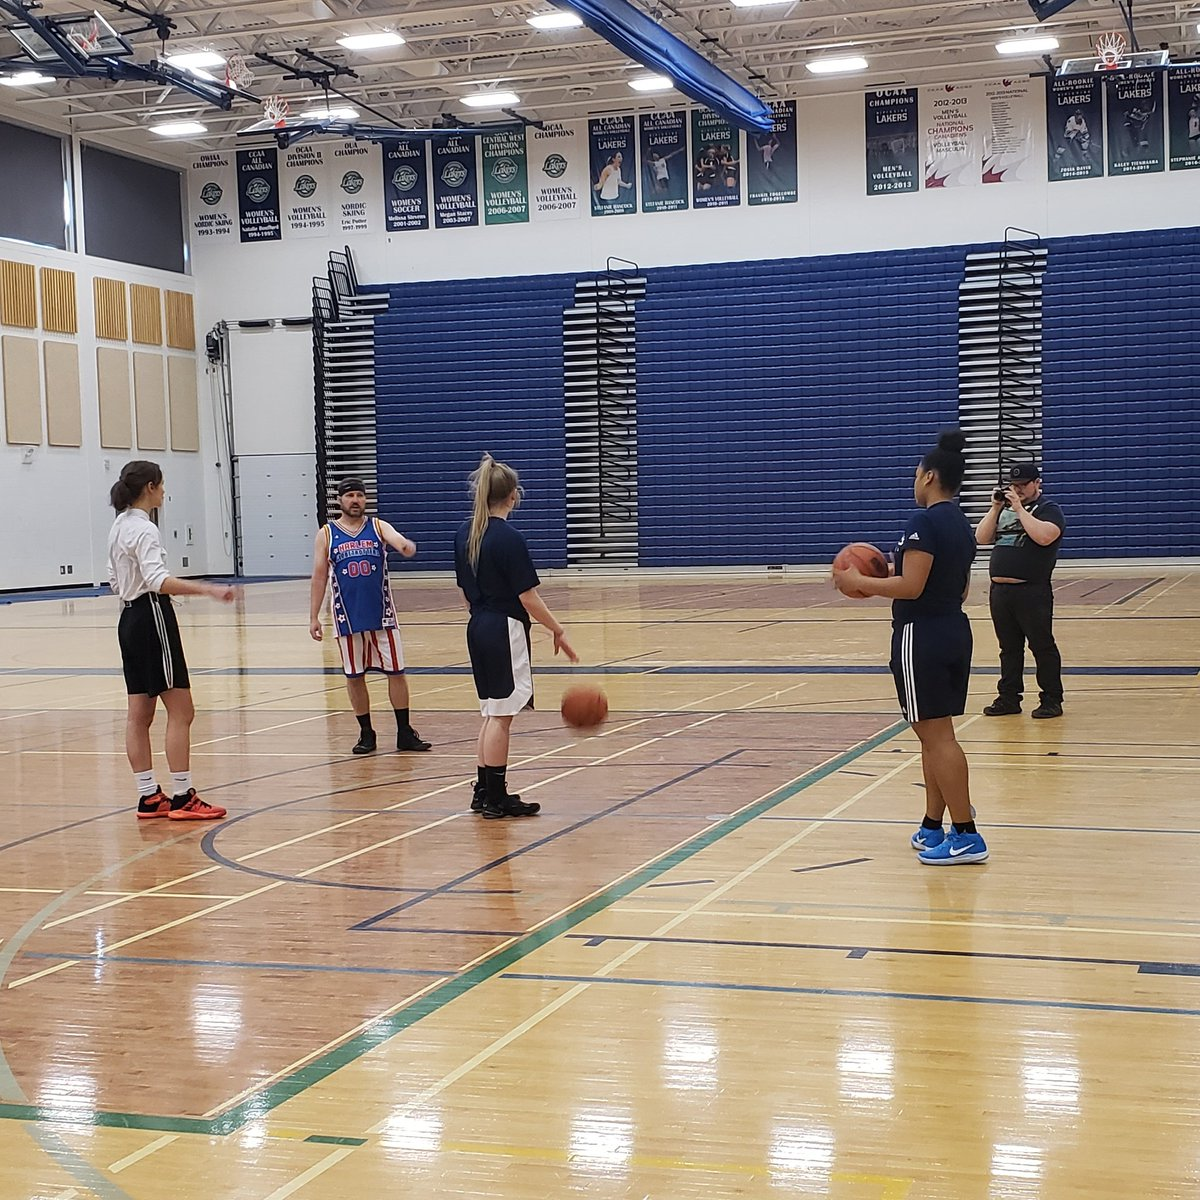 Great to have Kevin from KISS 100.5 in to get some bball lessons before his big debut with the Globetrotters! #golakers #ourway